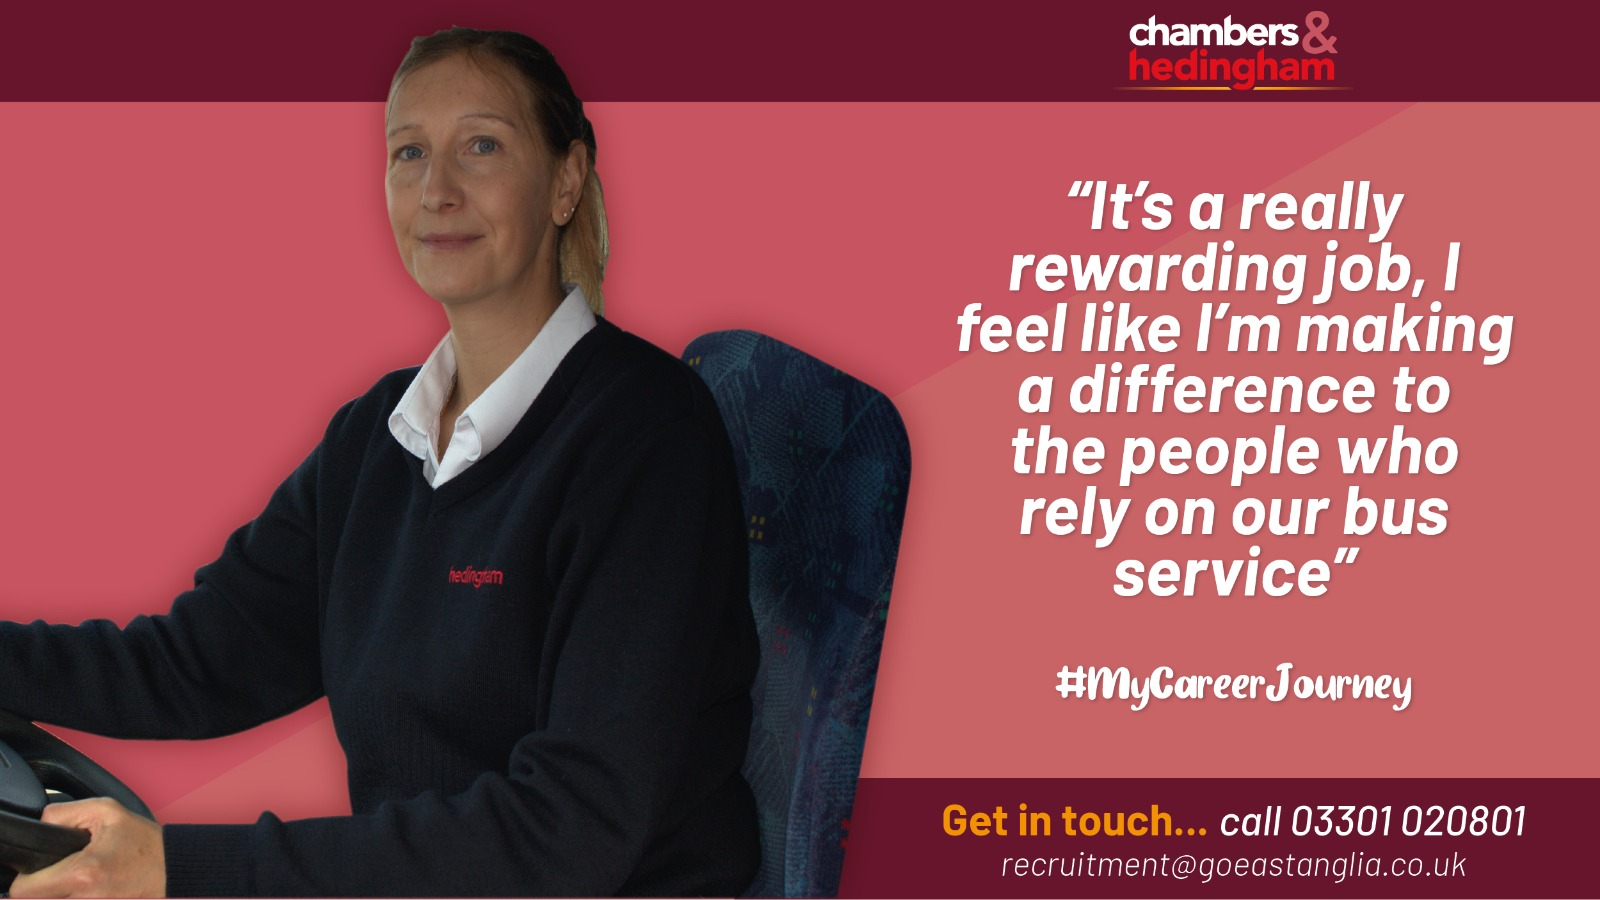 Image reading 'It's a really rewarding job, I feel like I'm making a difference to the people who rely on our bus service'